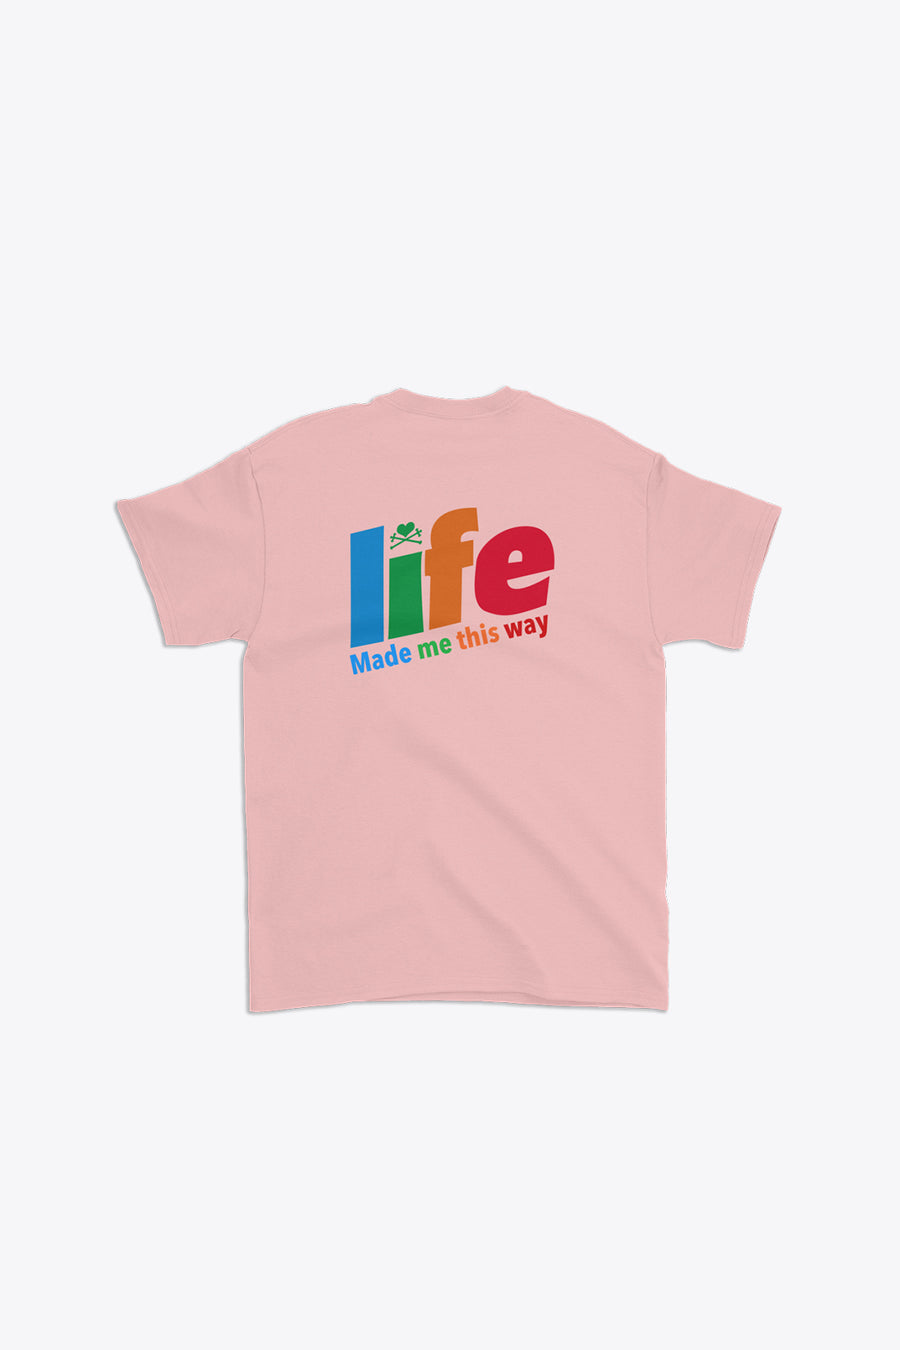 LIFE MADE ME THIS WAY LOGO TEE IN PINK